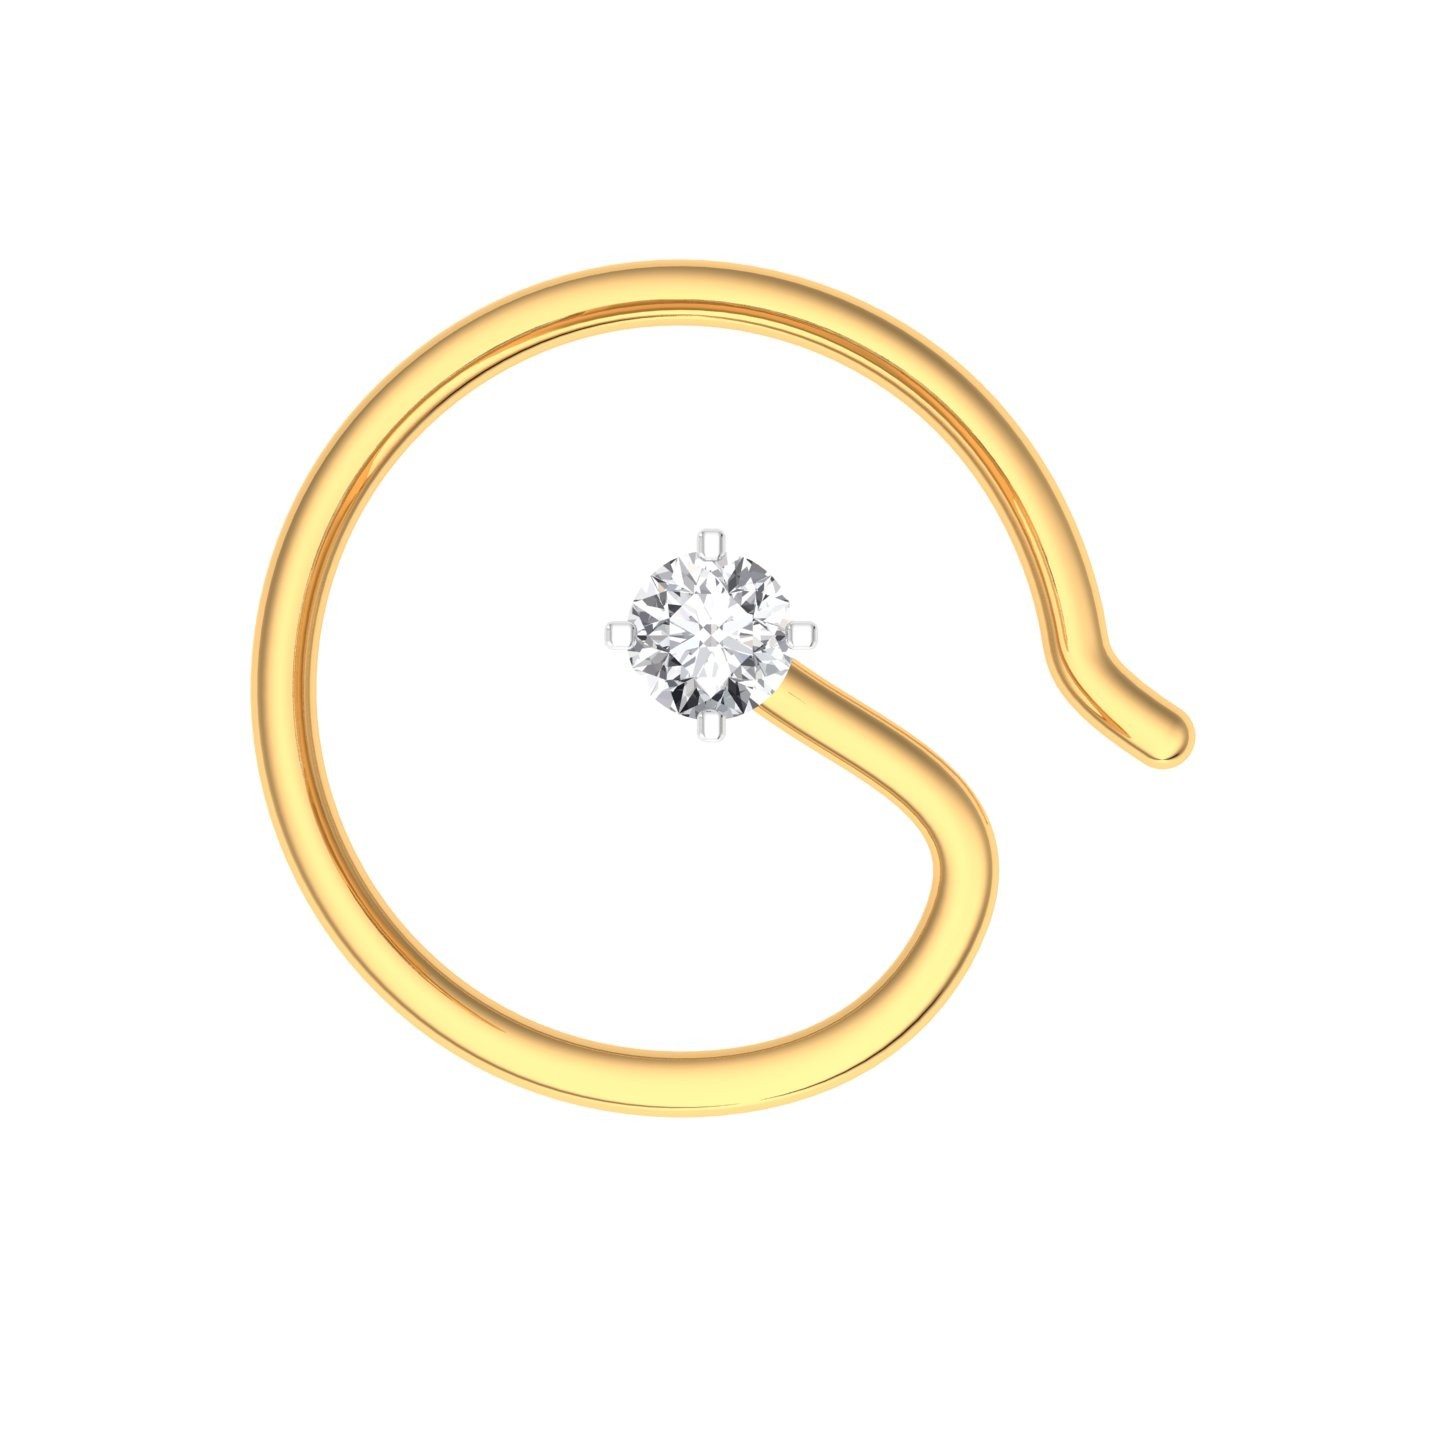 The Classic Hook Nose Pin 0 02 Carat Diamond Jewellery At Best